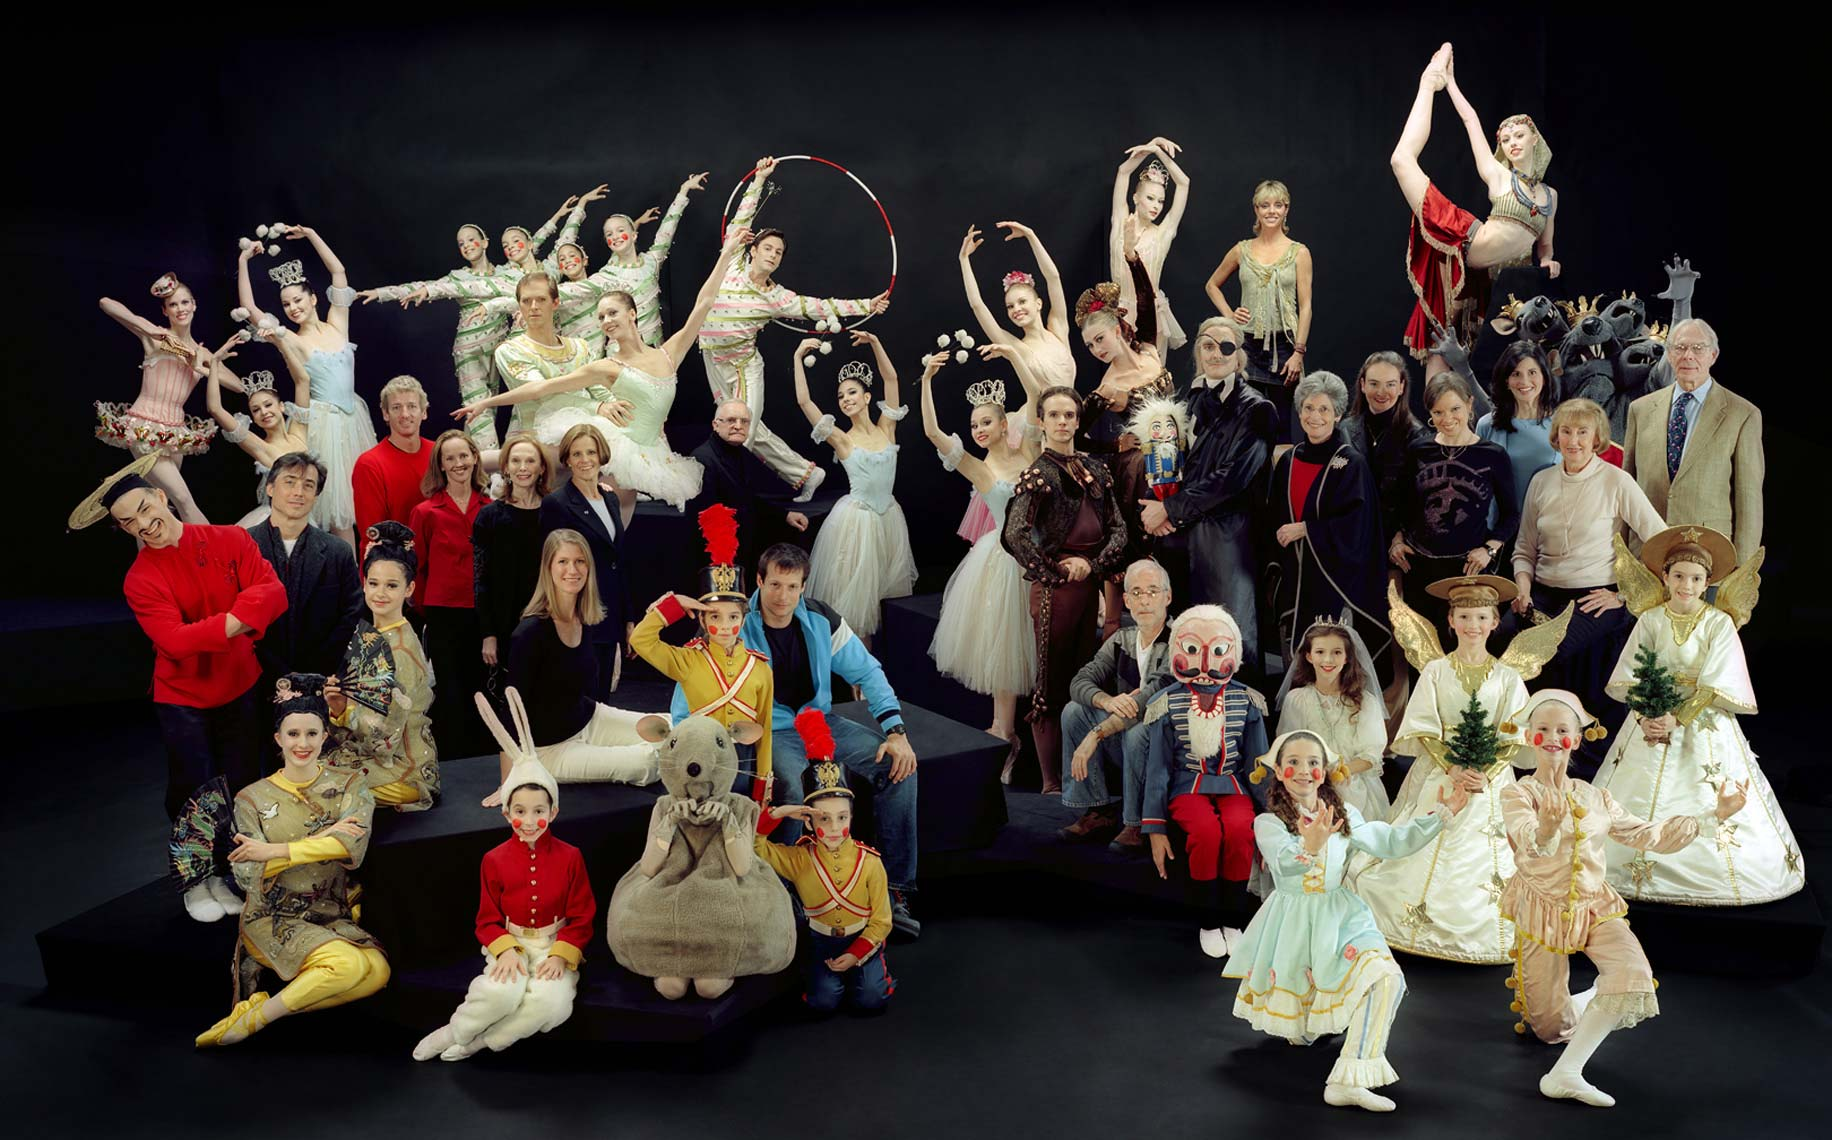 NYC BALLET / NEW YORK MAGAZINE